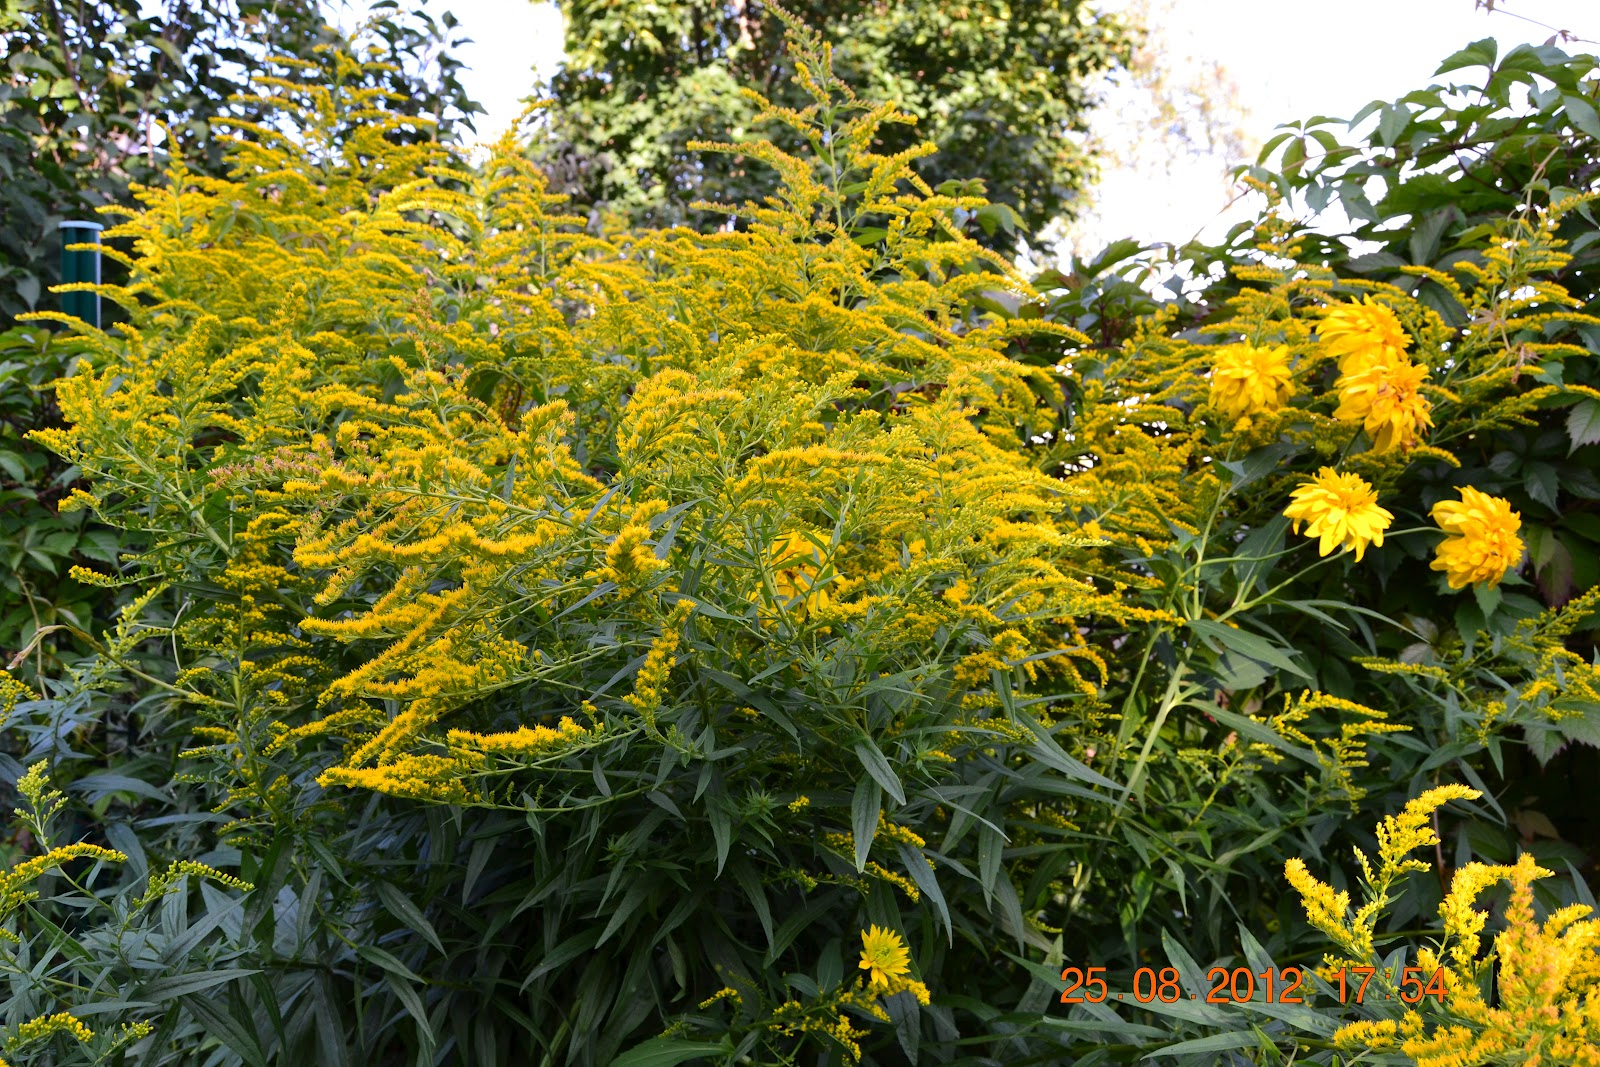 Kuvia kukkivista perennoista puutarhassamme – Some photos of the blooming perennials in our garden